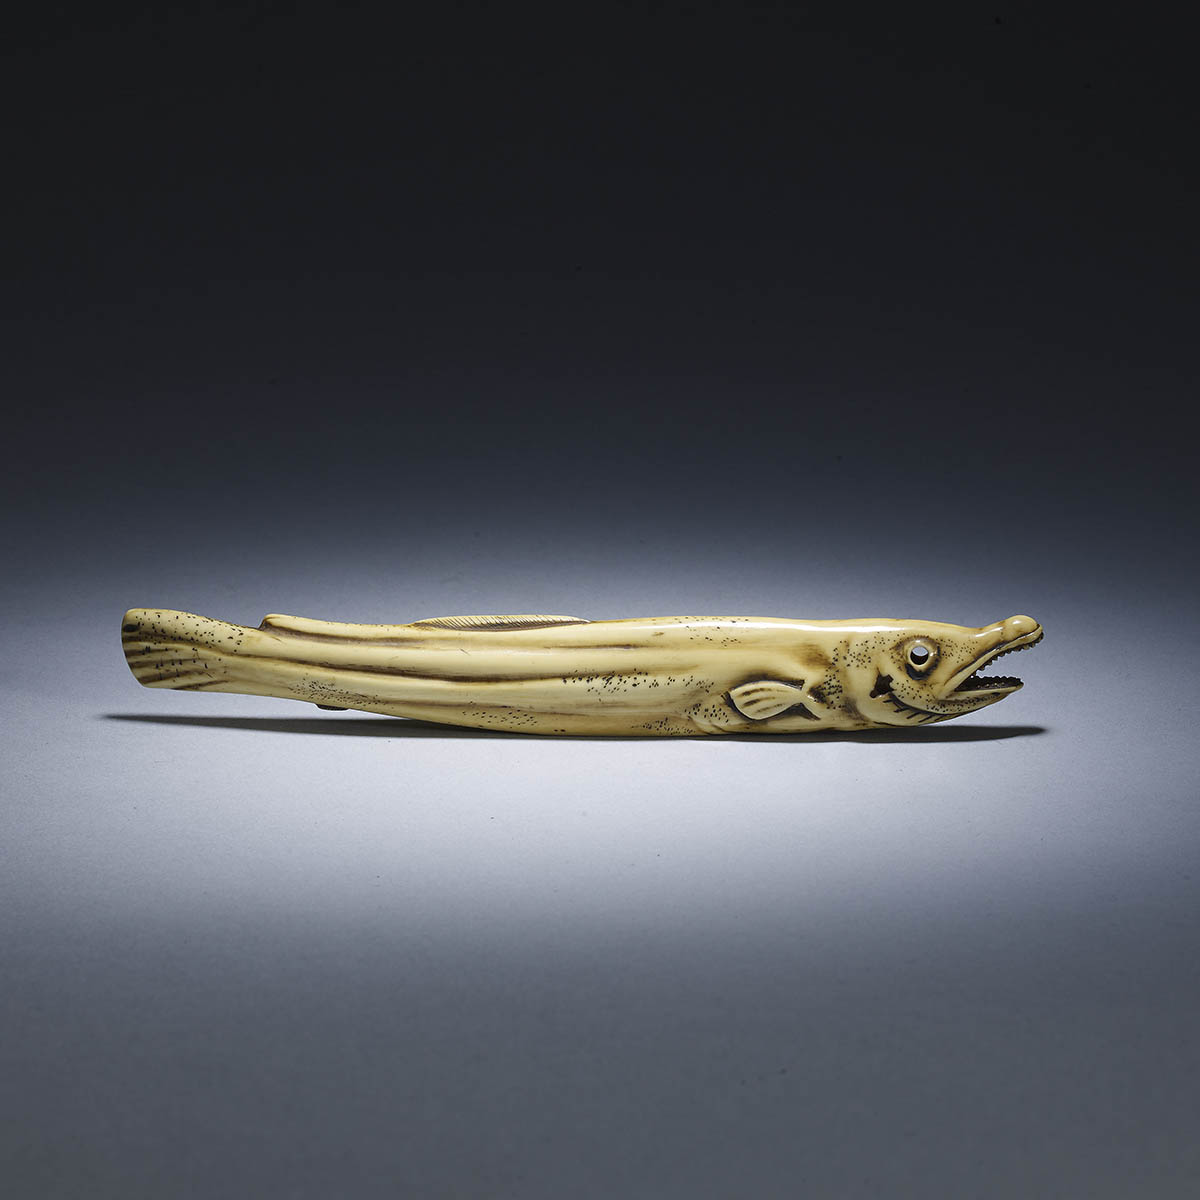 Ivory sashi netsuke of a dried salmon MR2501_v1